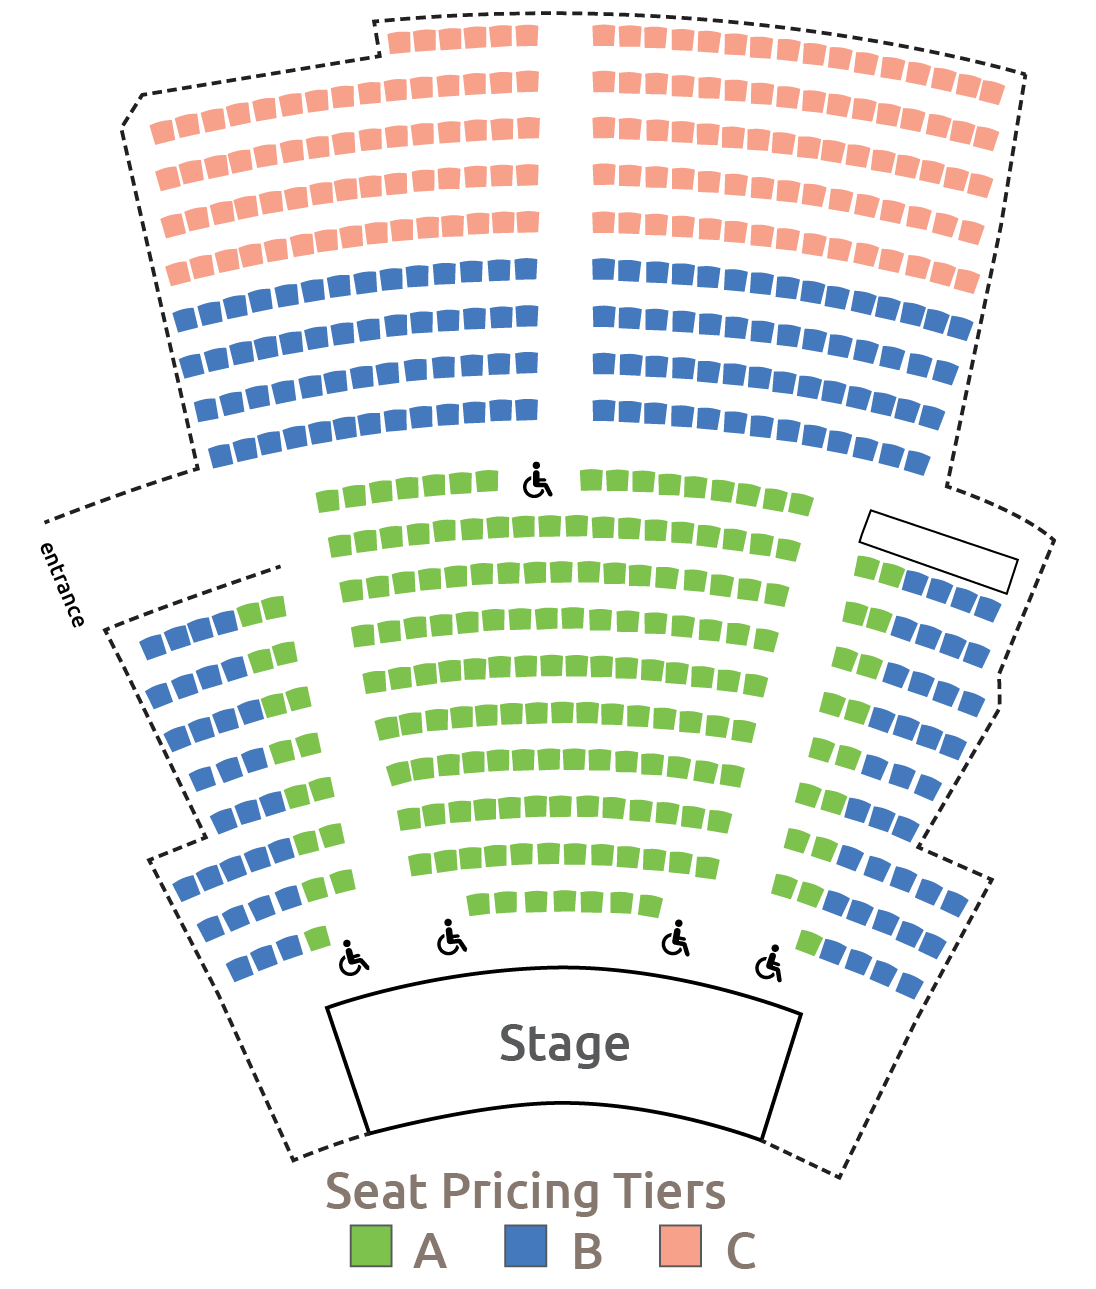 White Theatre Seating Chart 2019-2020